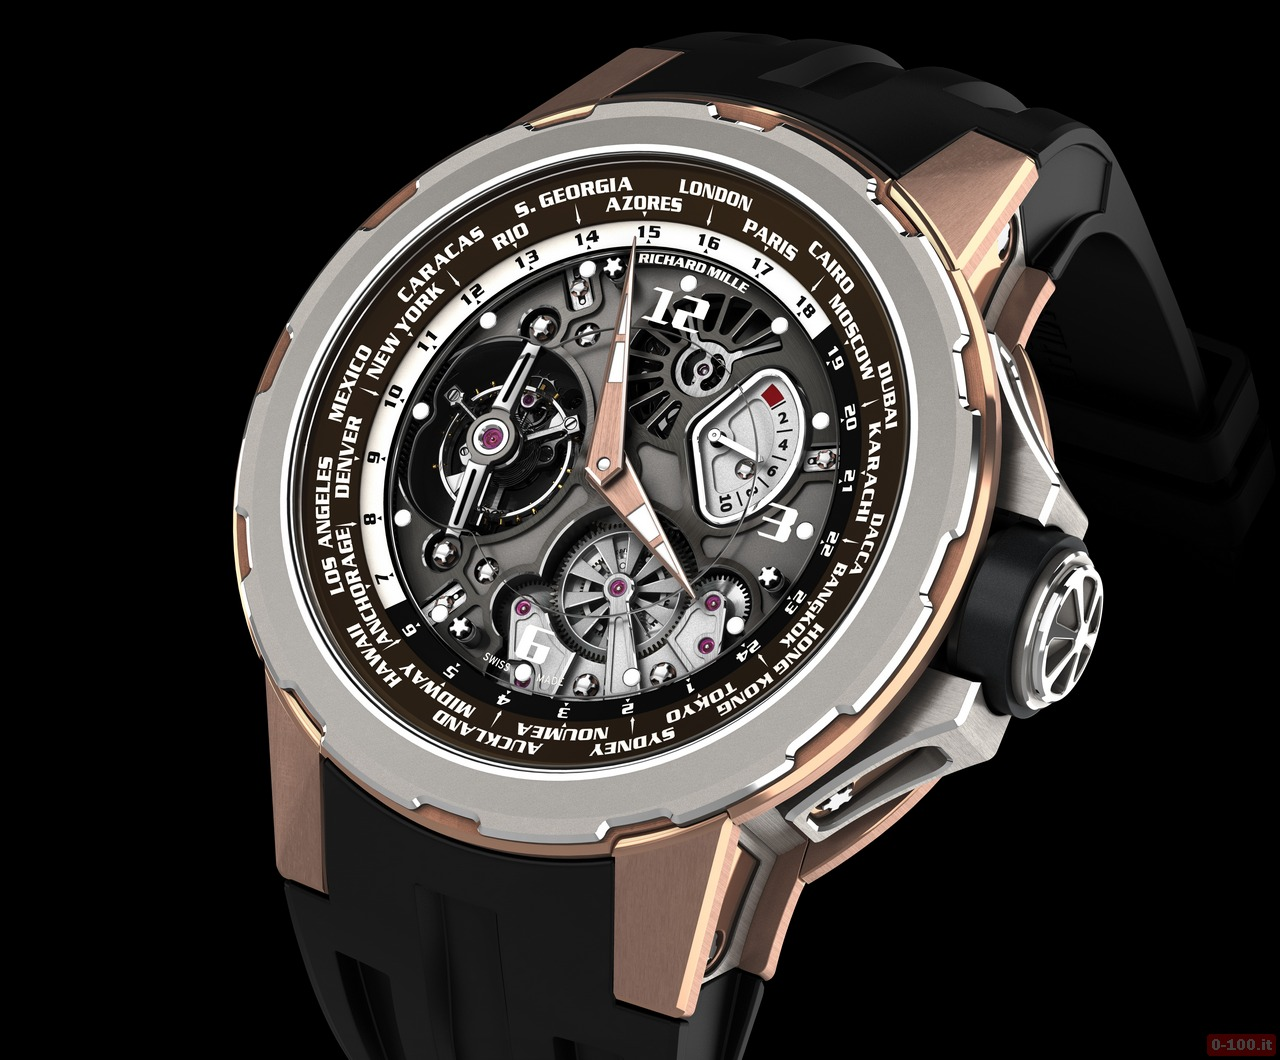 0-100.it | Richard Mille RM 58-01 World Timer Jean Todt Limited Edition